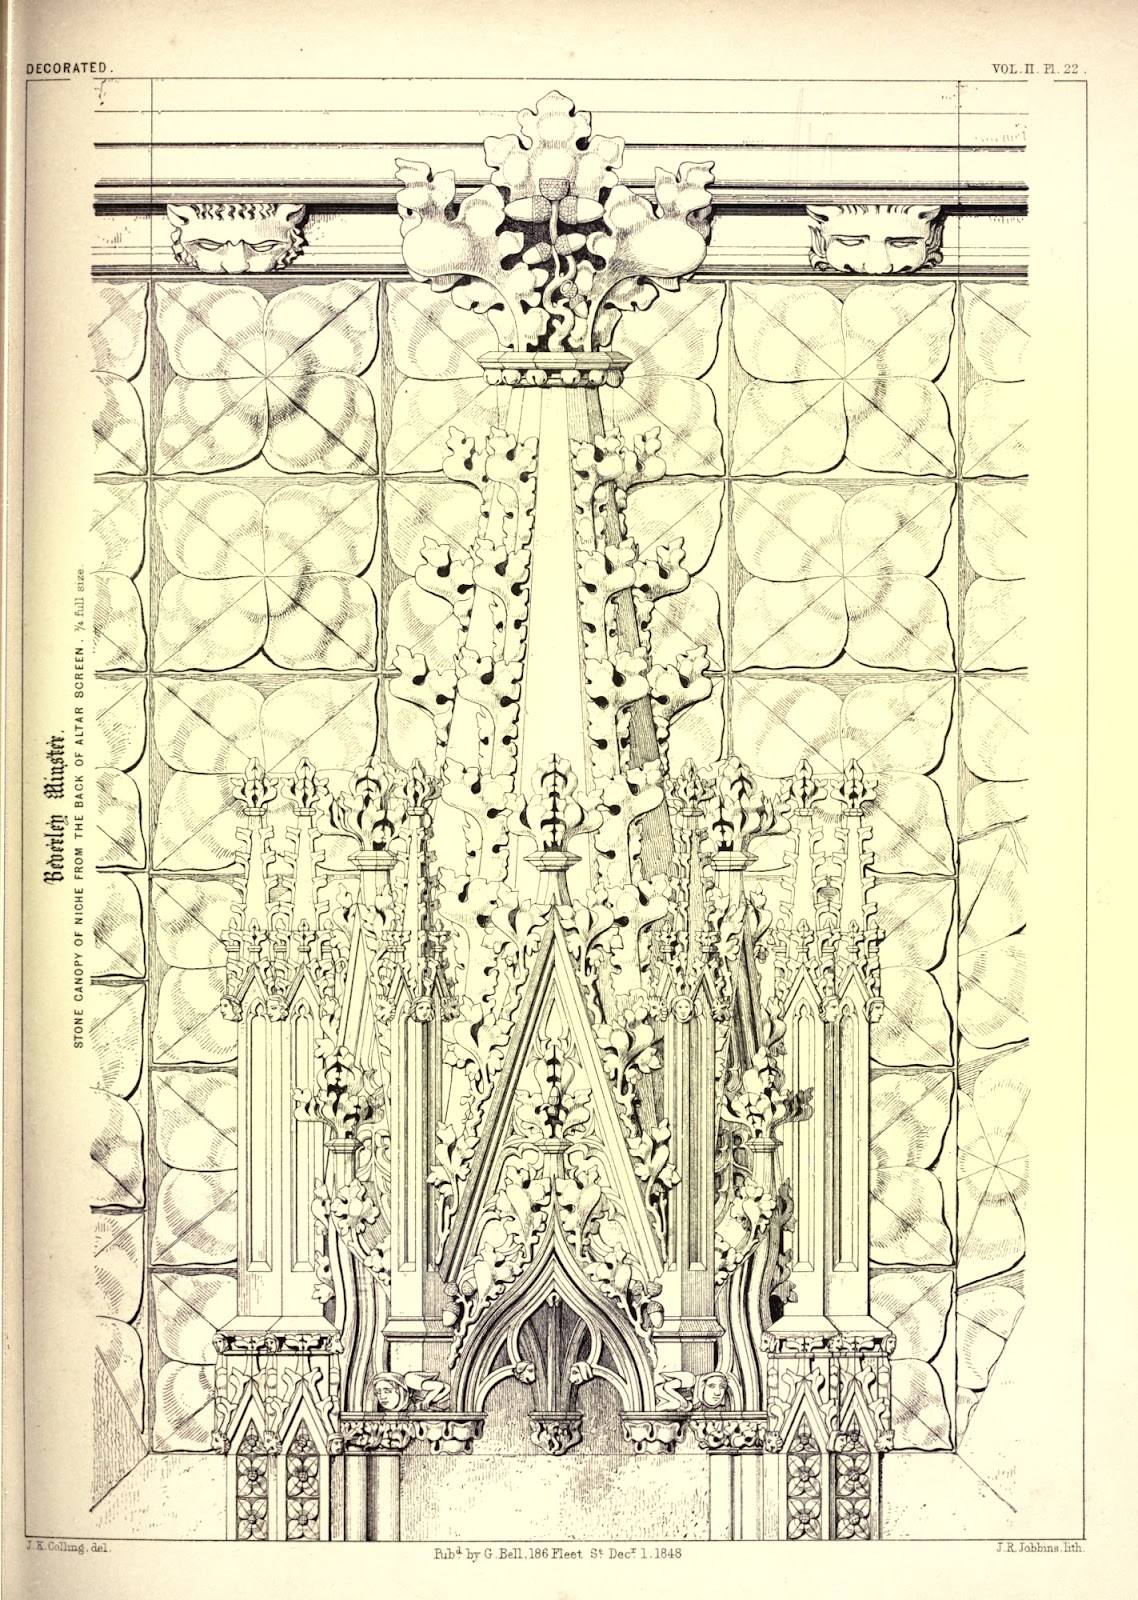 V Scans From Collings Gothic OrnamentsFrom The Image Archive